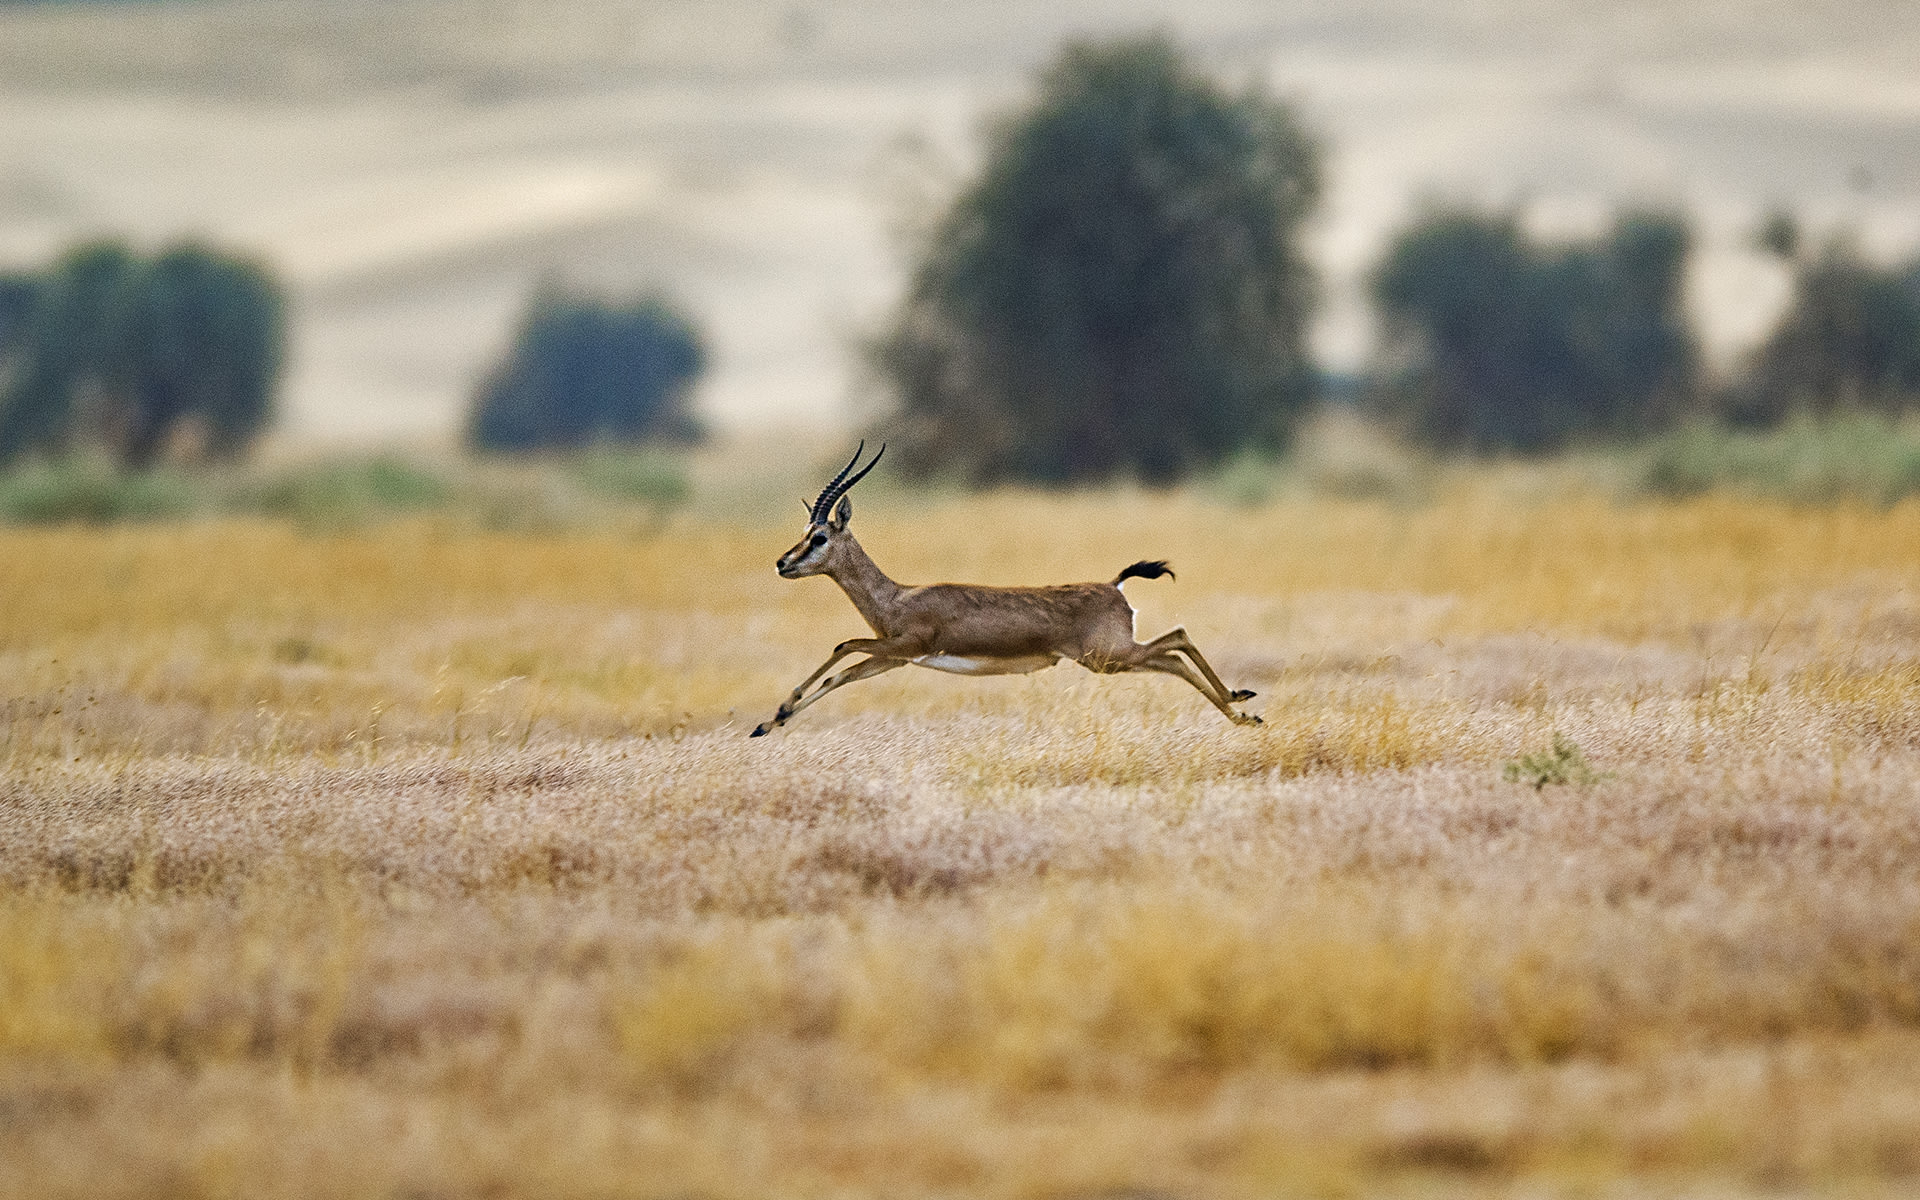 When threatened, the agile and swift chinkara can run with bursts of leaps, sometimes with all four feet into the air, and quickly get away. Photo: Dhritiman Mukherjee